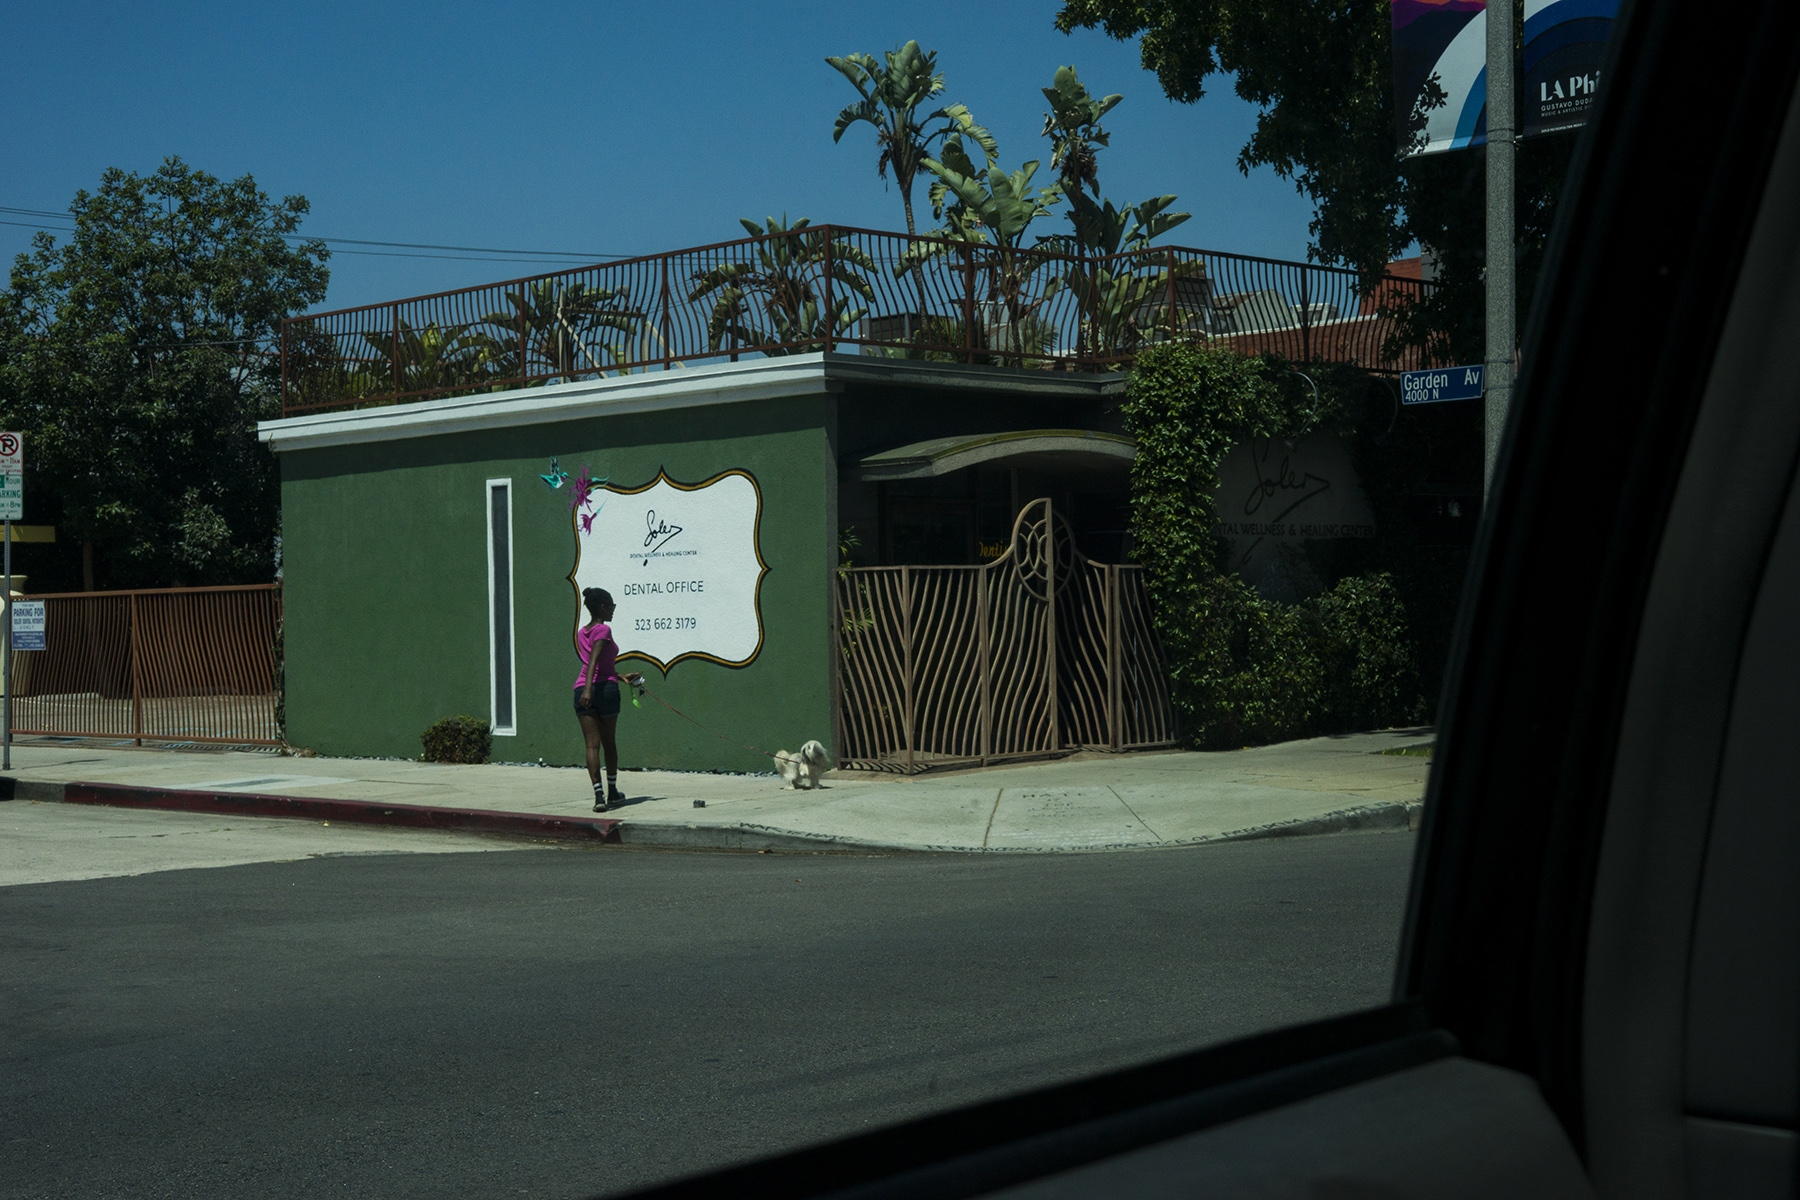 Street scene. Near Los Feliz Boulevard. Los Angeles (California). 2018